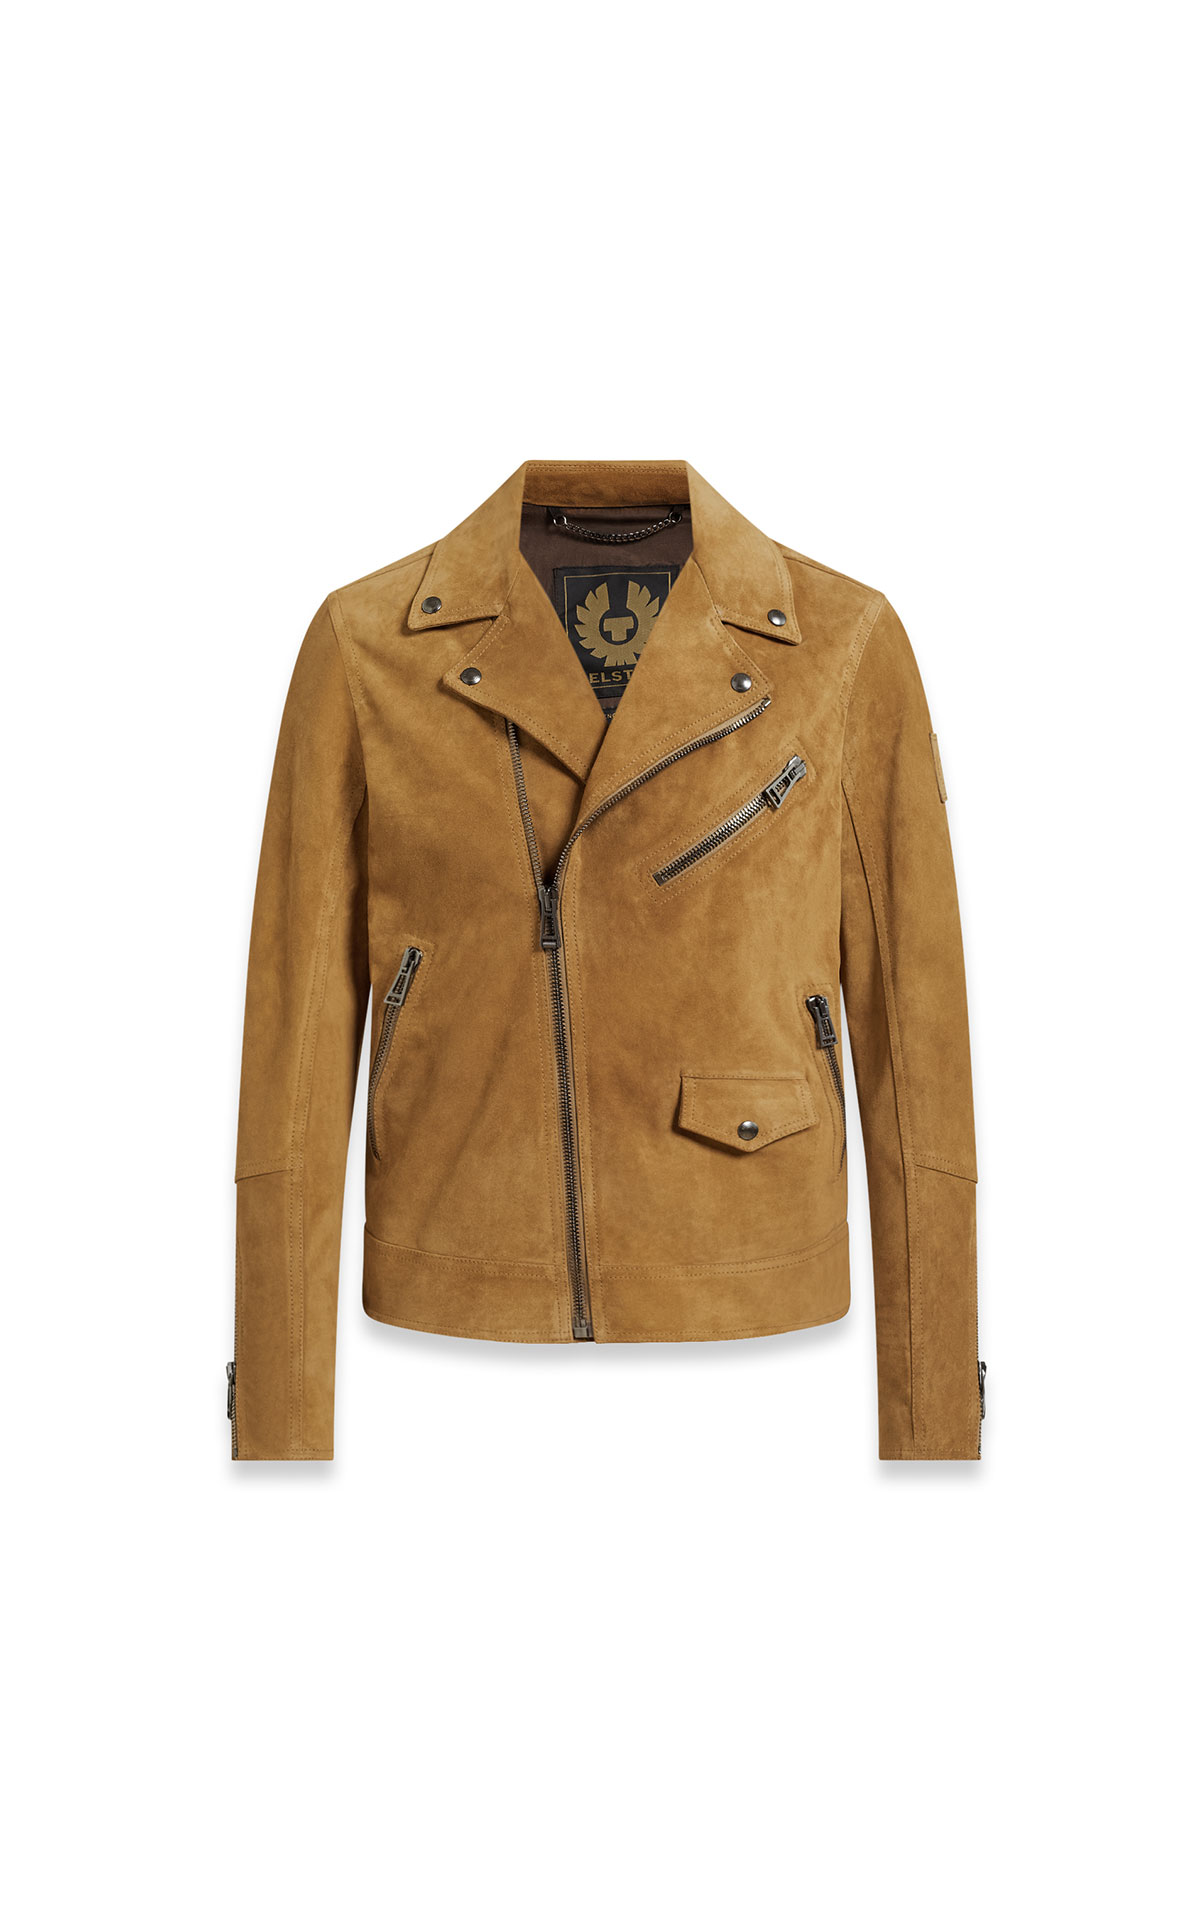 Belstaff Fenway jacket from Bicester Village